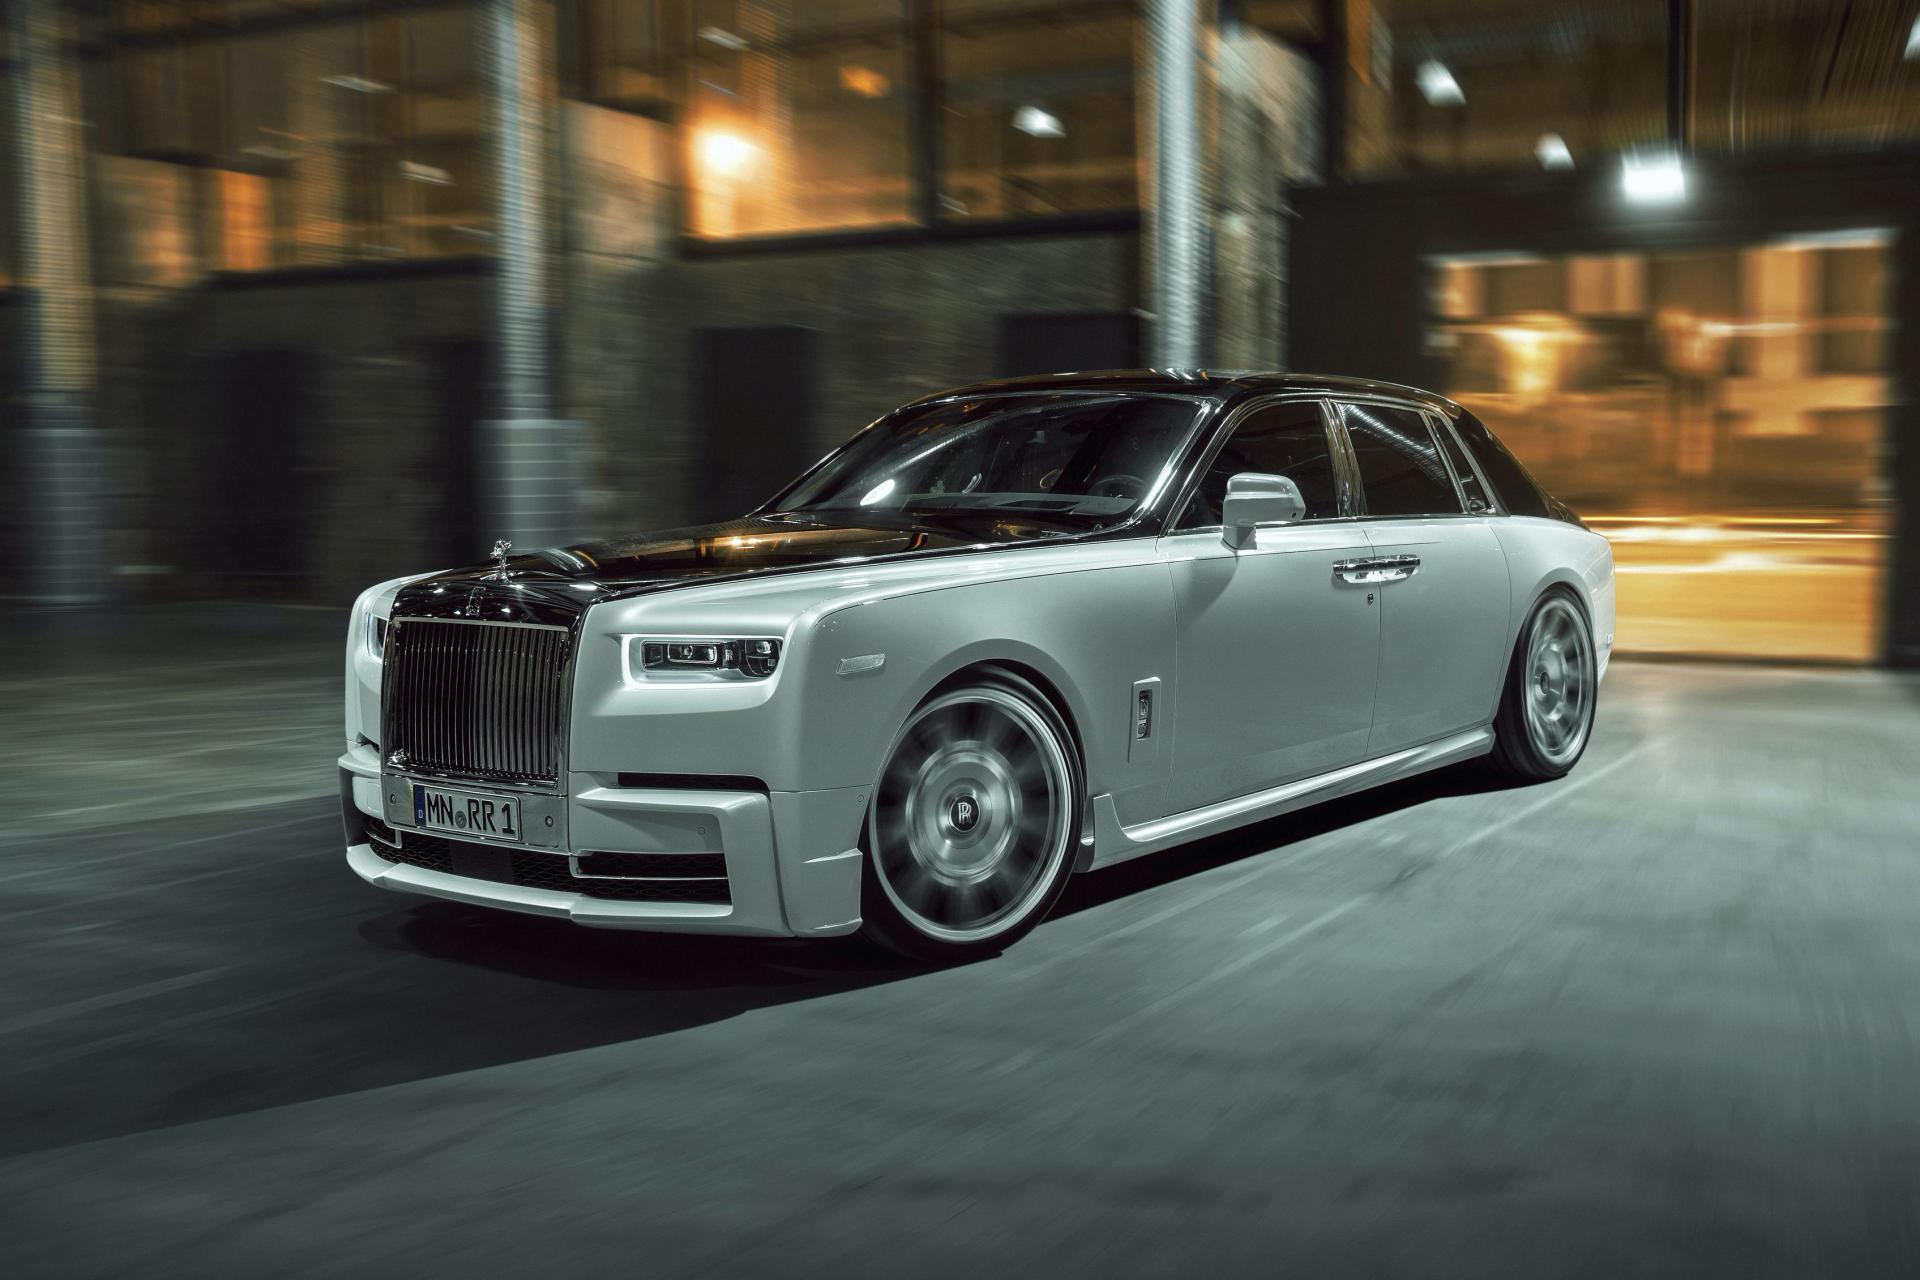 rolls-royce-phantom-tuned-by-spofec-3.jpg